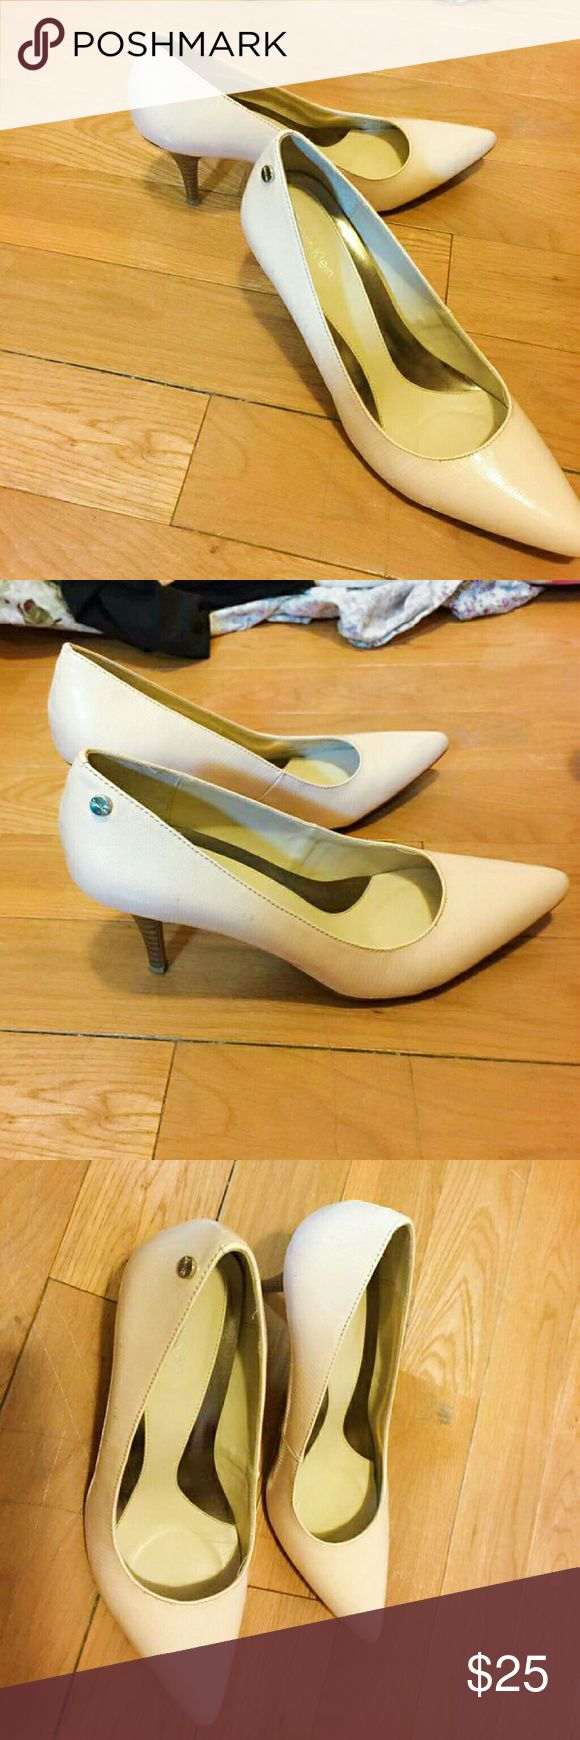 CALVIN KLEIN PUMPS LOVELY HEELS IN FLATTERING PINKISH CREAM COLOR, WORE ONCE FOR LUNCHEON Calvin Klein Shoes Heels